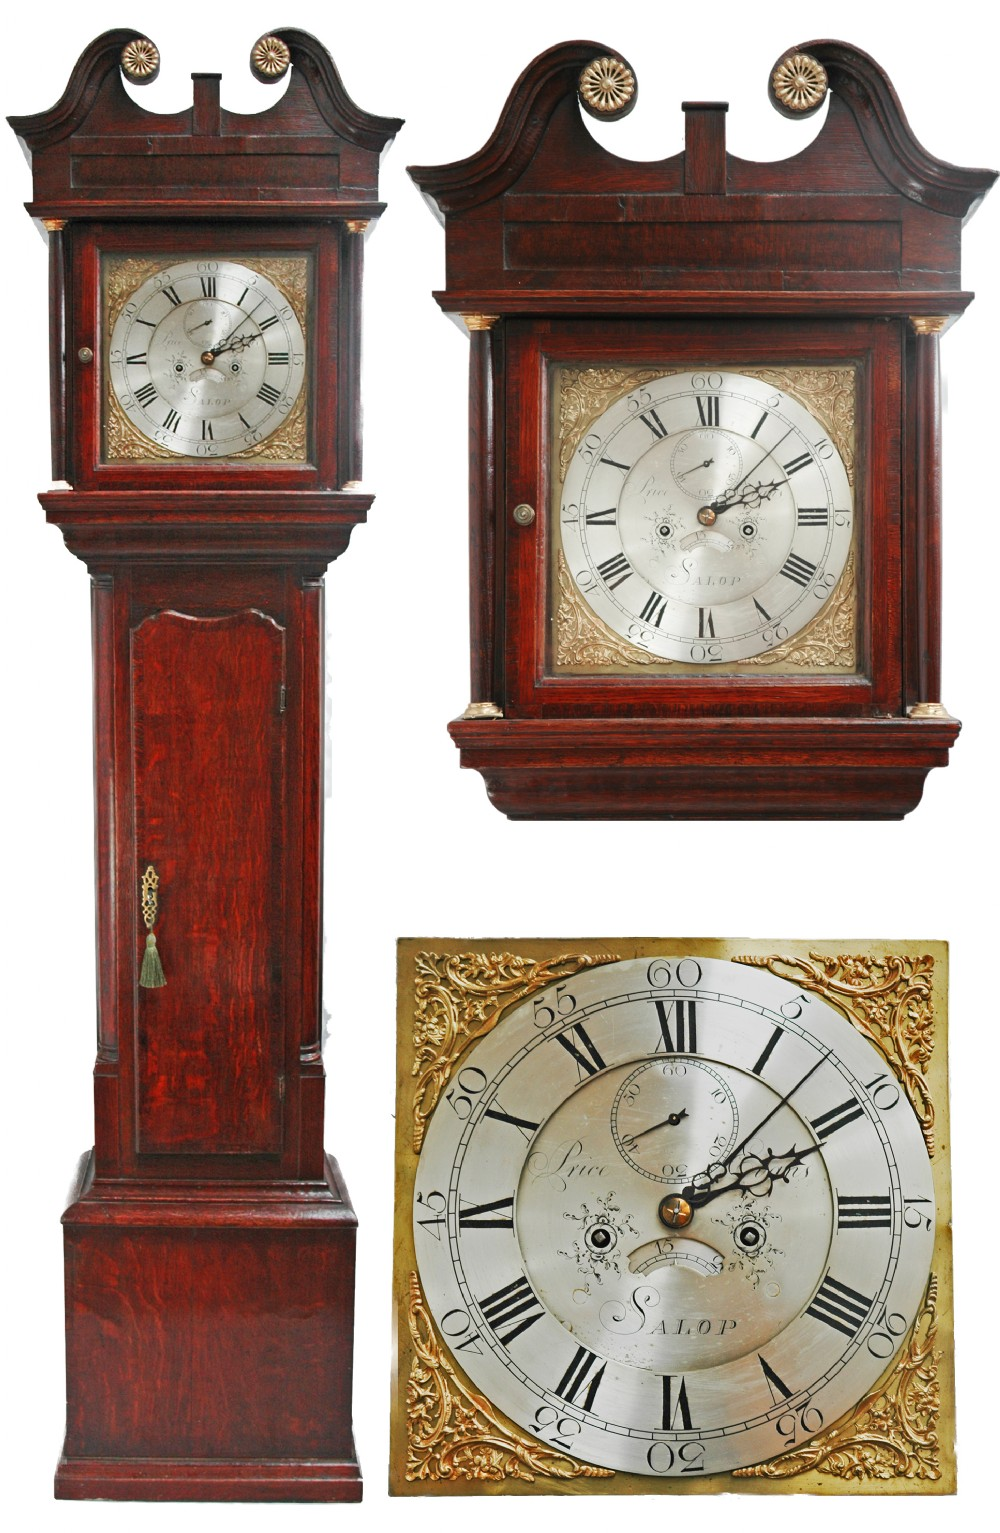 antique 8 day long case clock by price evans of salop circa 1770